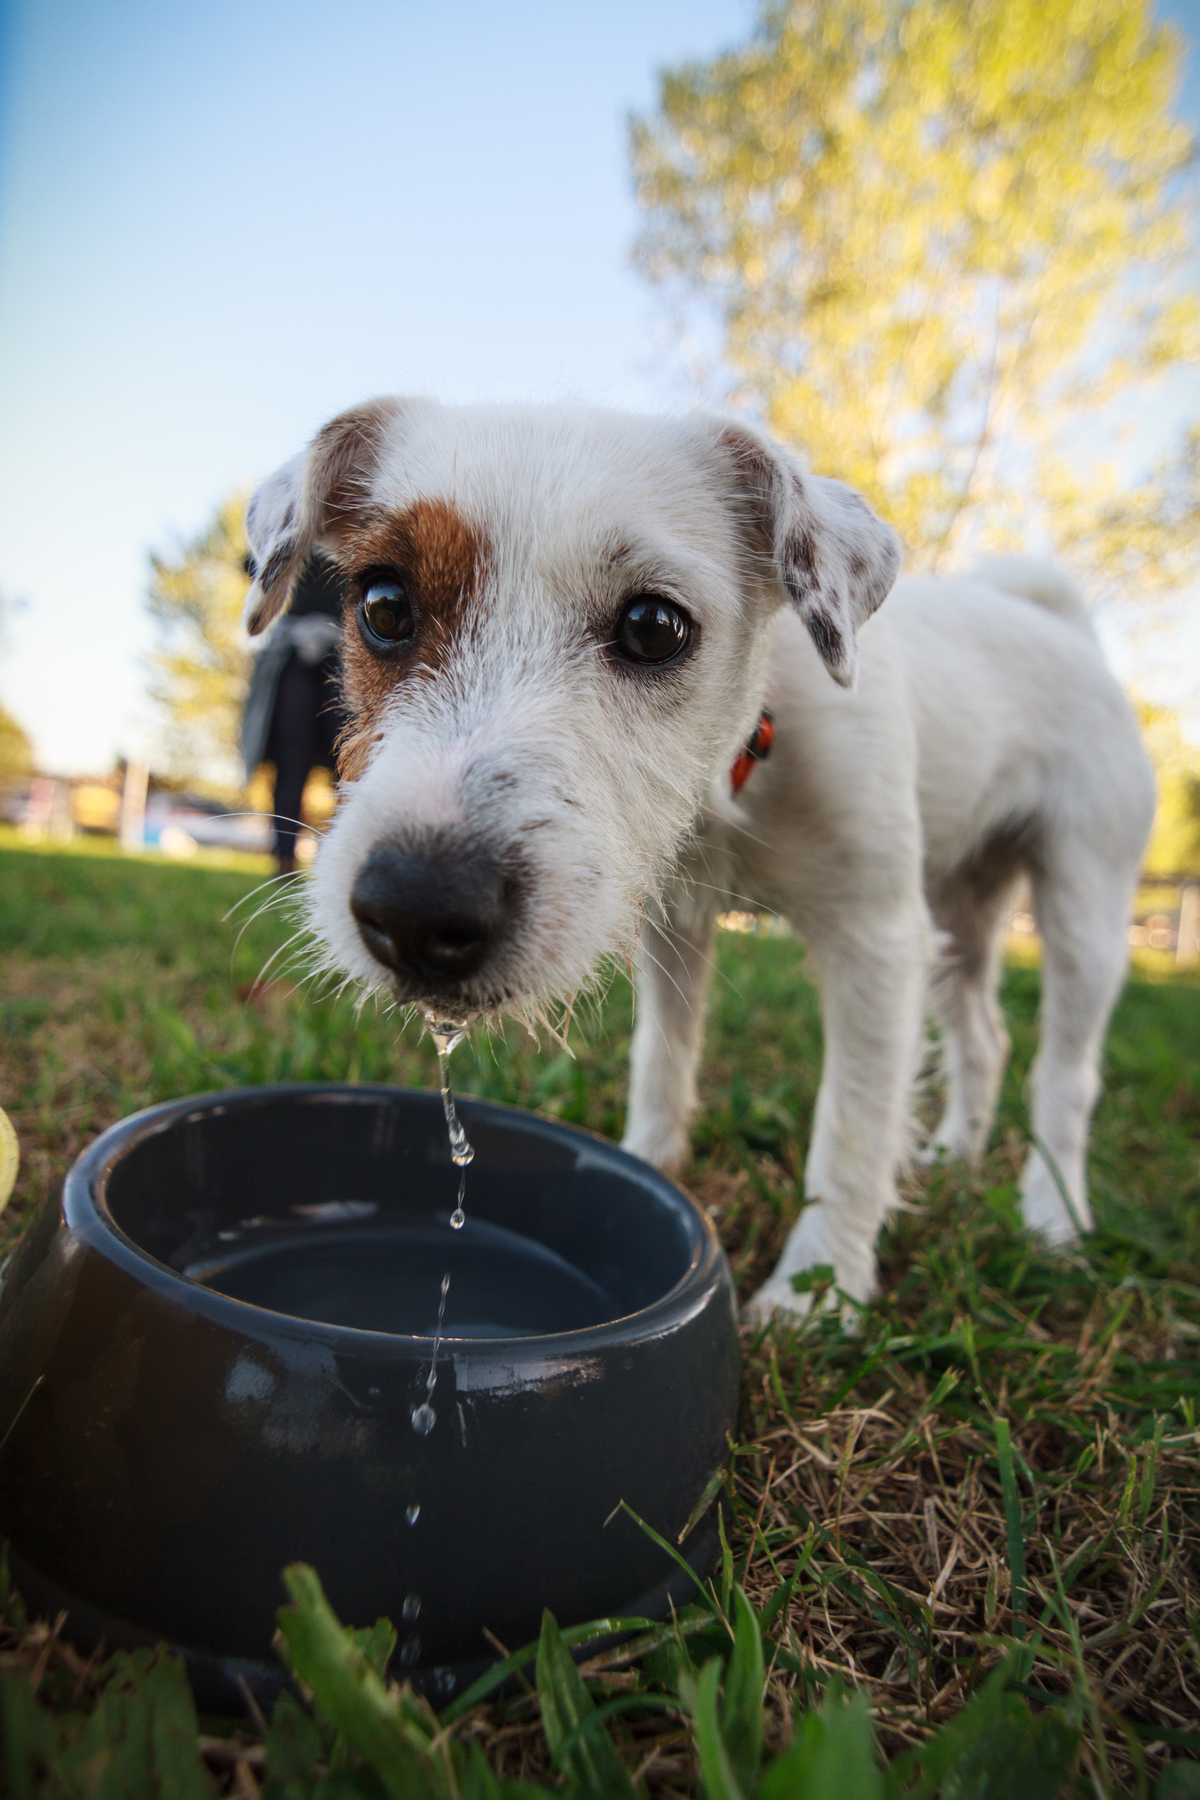 Caninsulin.com dog drinking from a water bowl